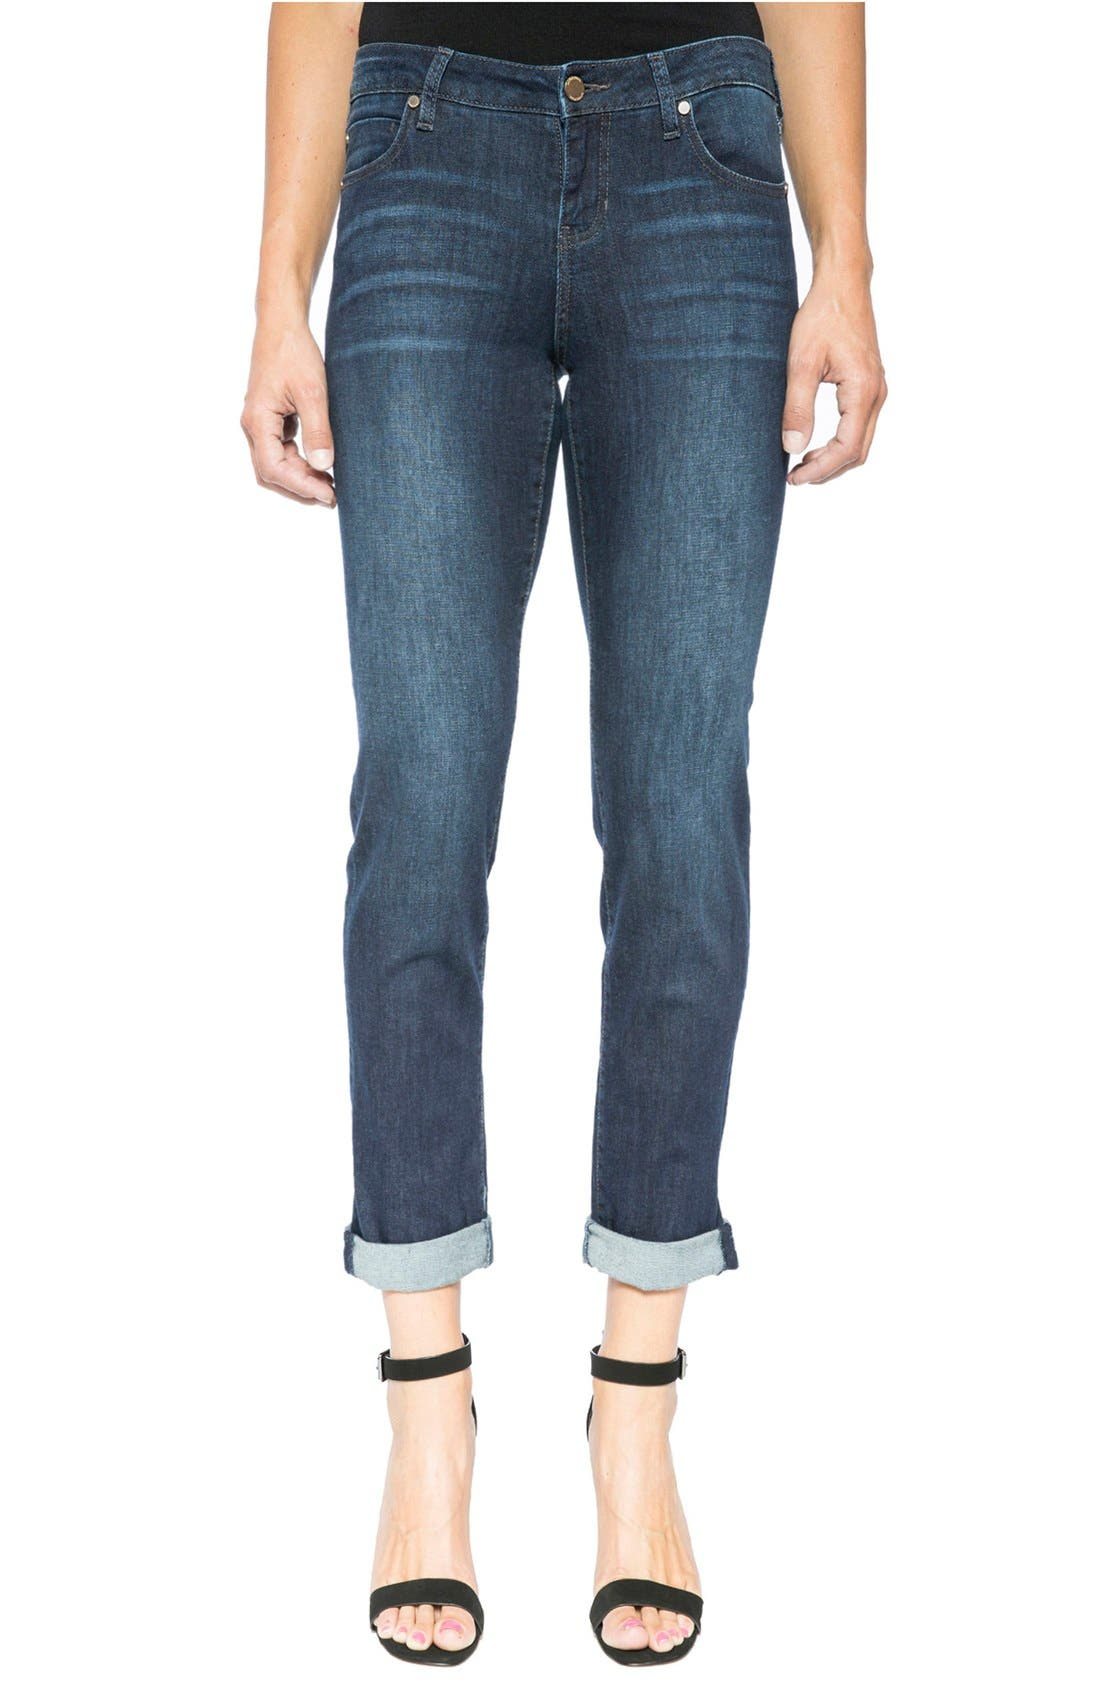 Women's Liverpool Jeans Company Peyton Slim Stretch Crop Boyfriend Jeans